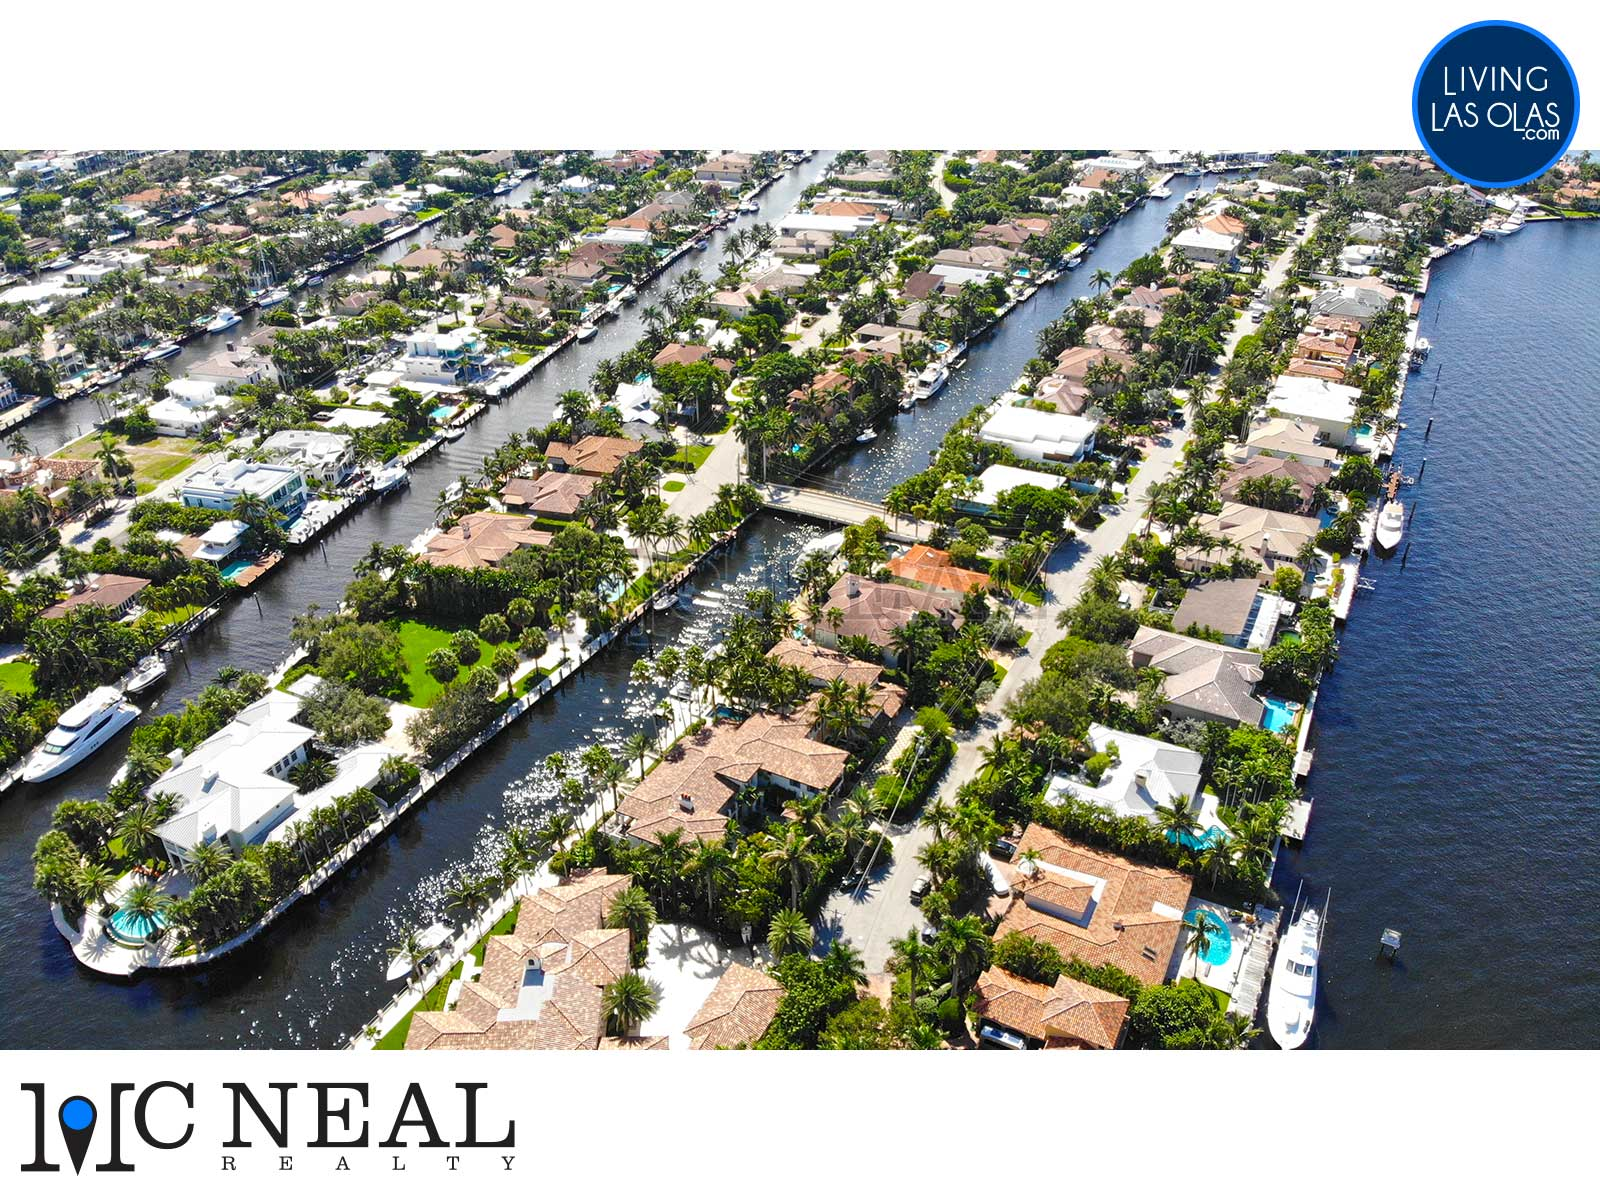 Seven Isles Homes Real Estate Las Olas Isles 05